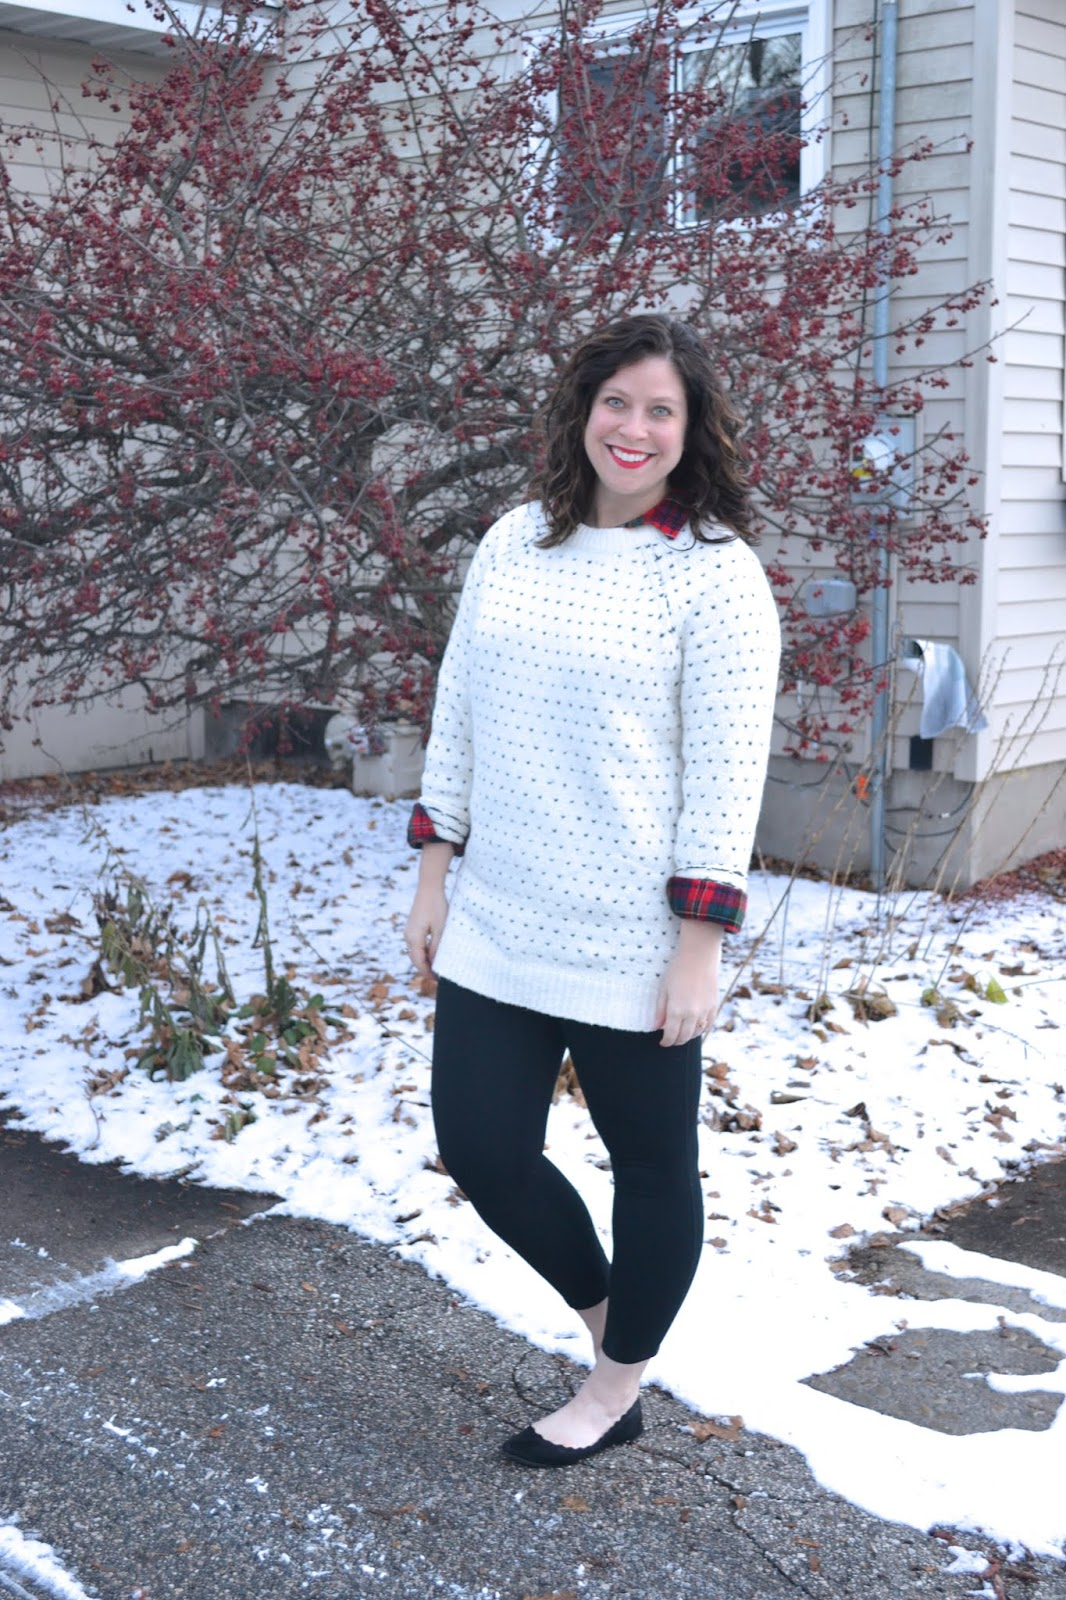 556947fe800d I did let myself splurge on a few holiday pieces during the cyber sales on  Black Friday. Two of my favorite things I purchased are this sweater and  plaid ...